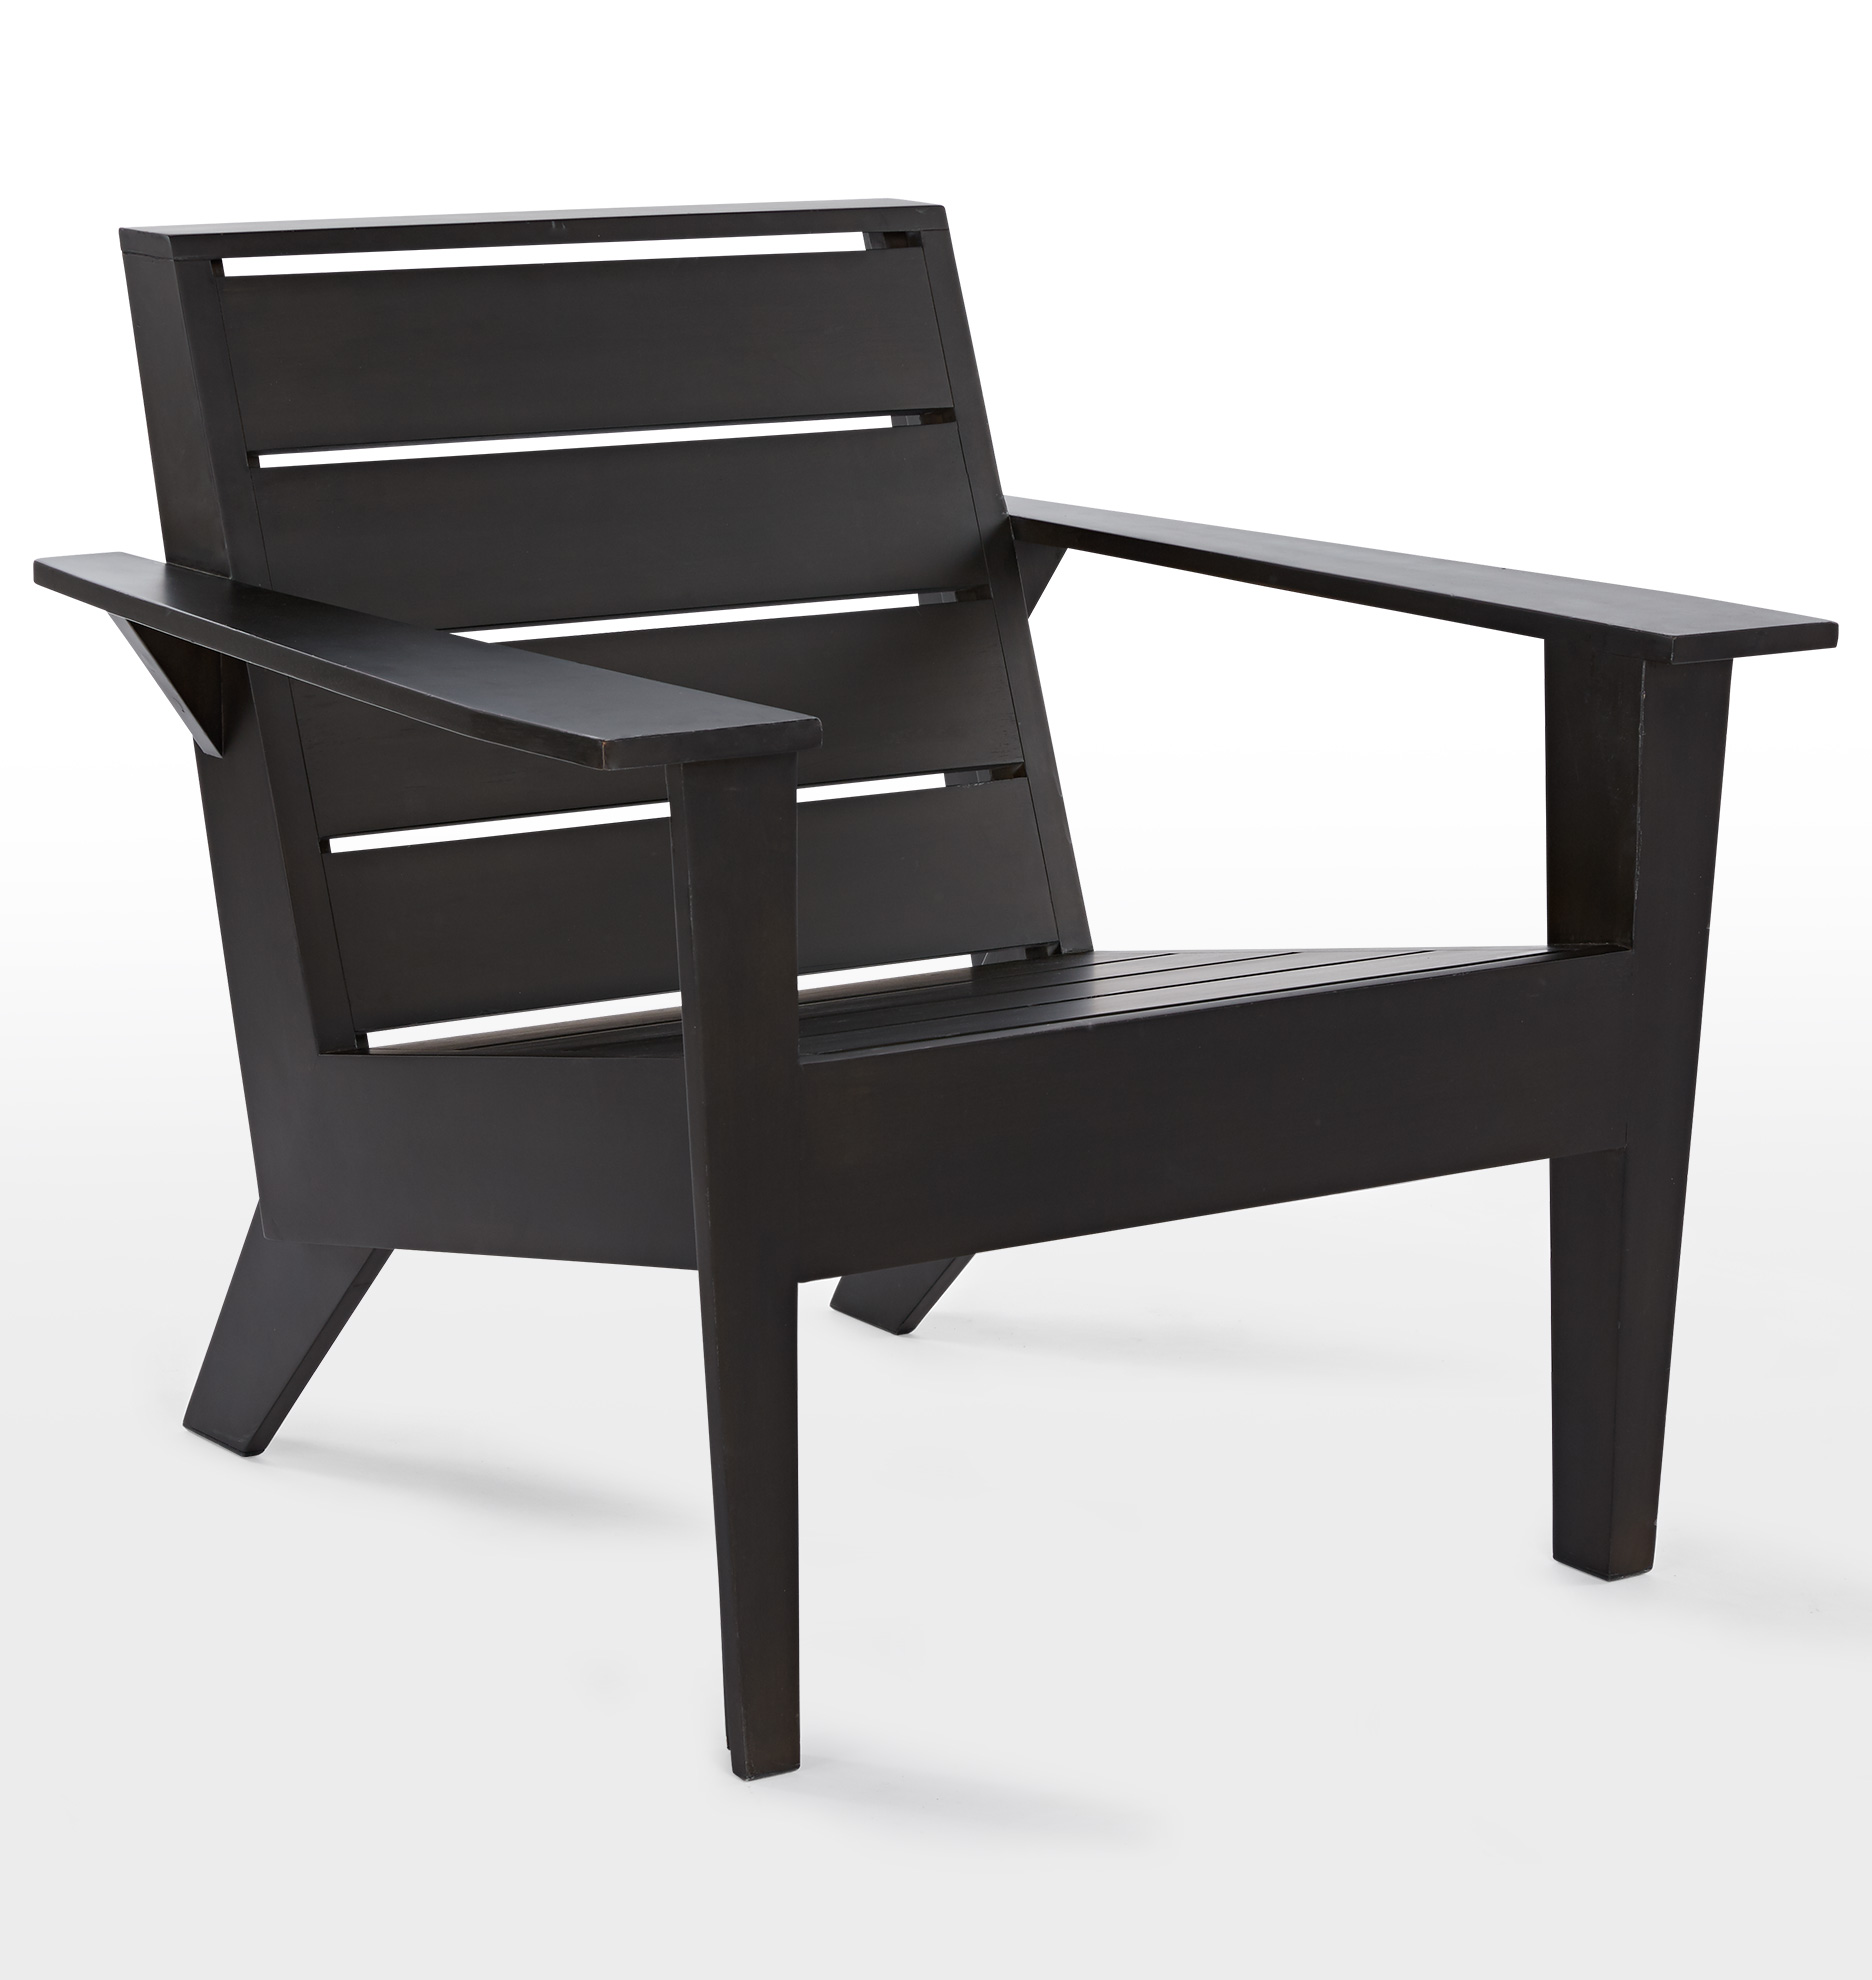 Arcadia adirondack chair and side table